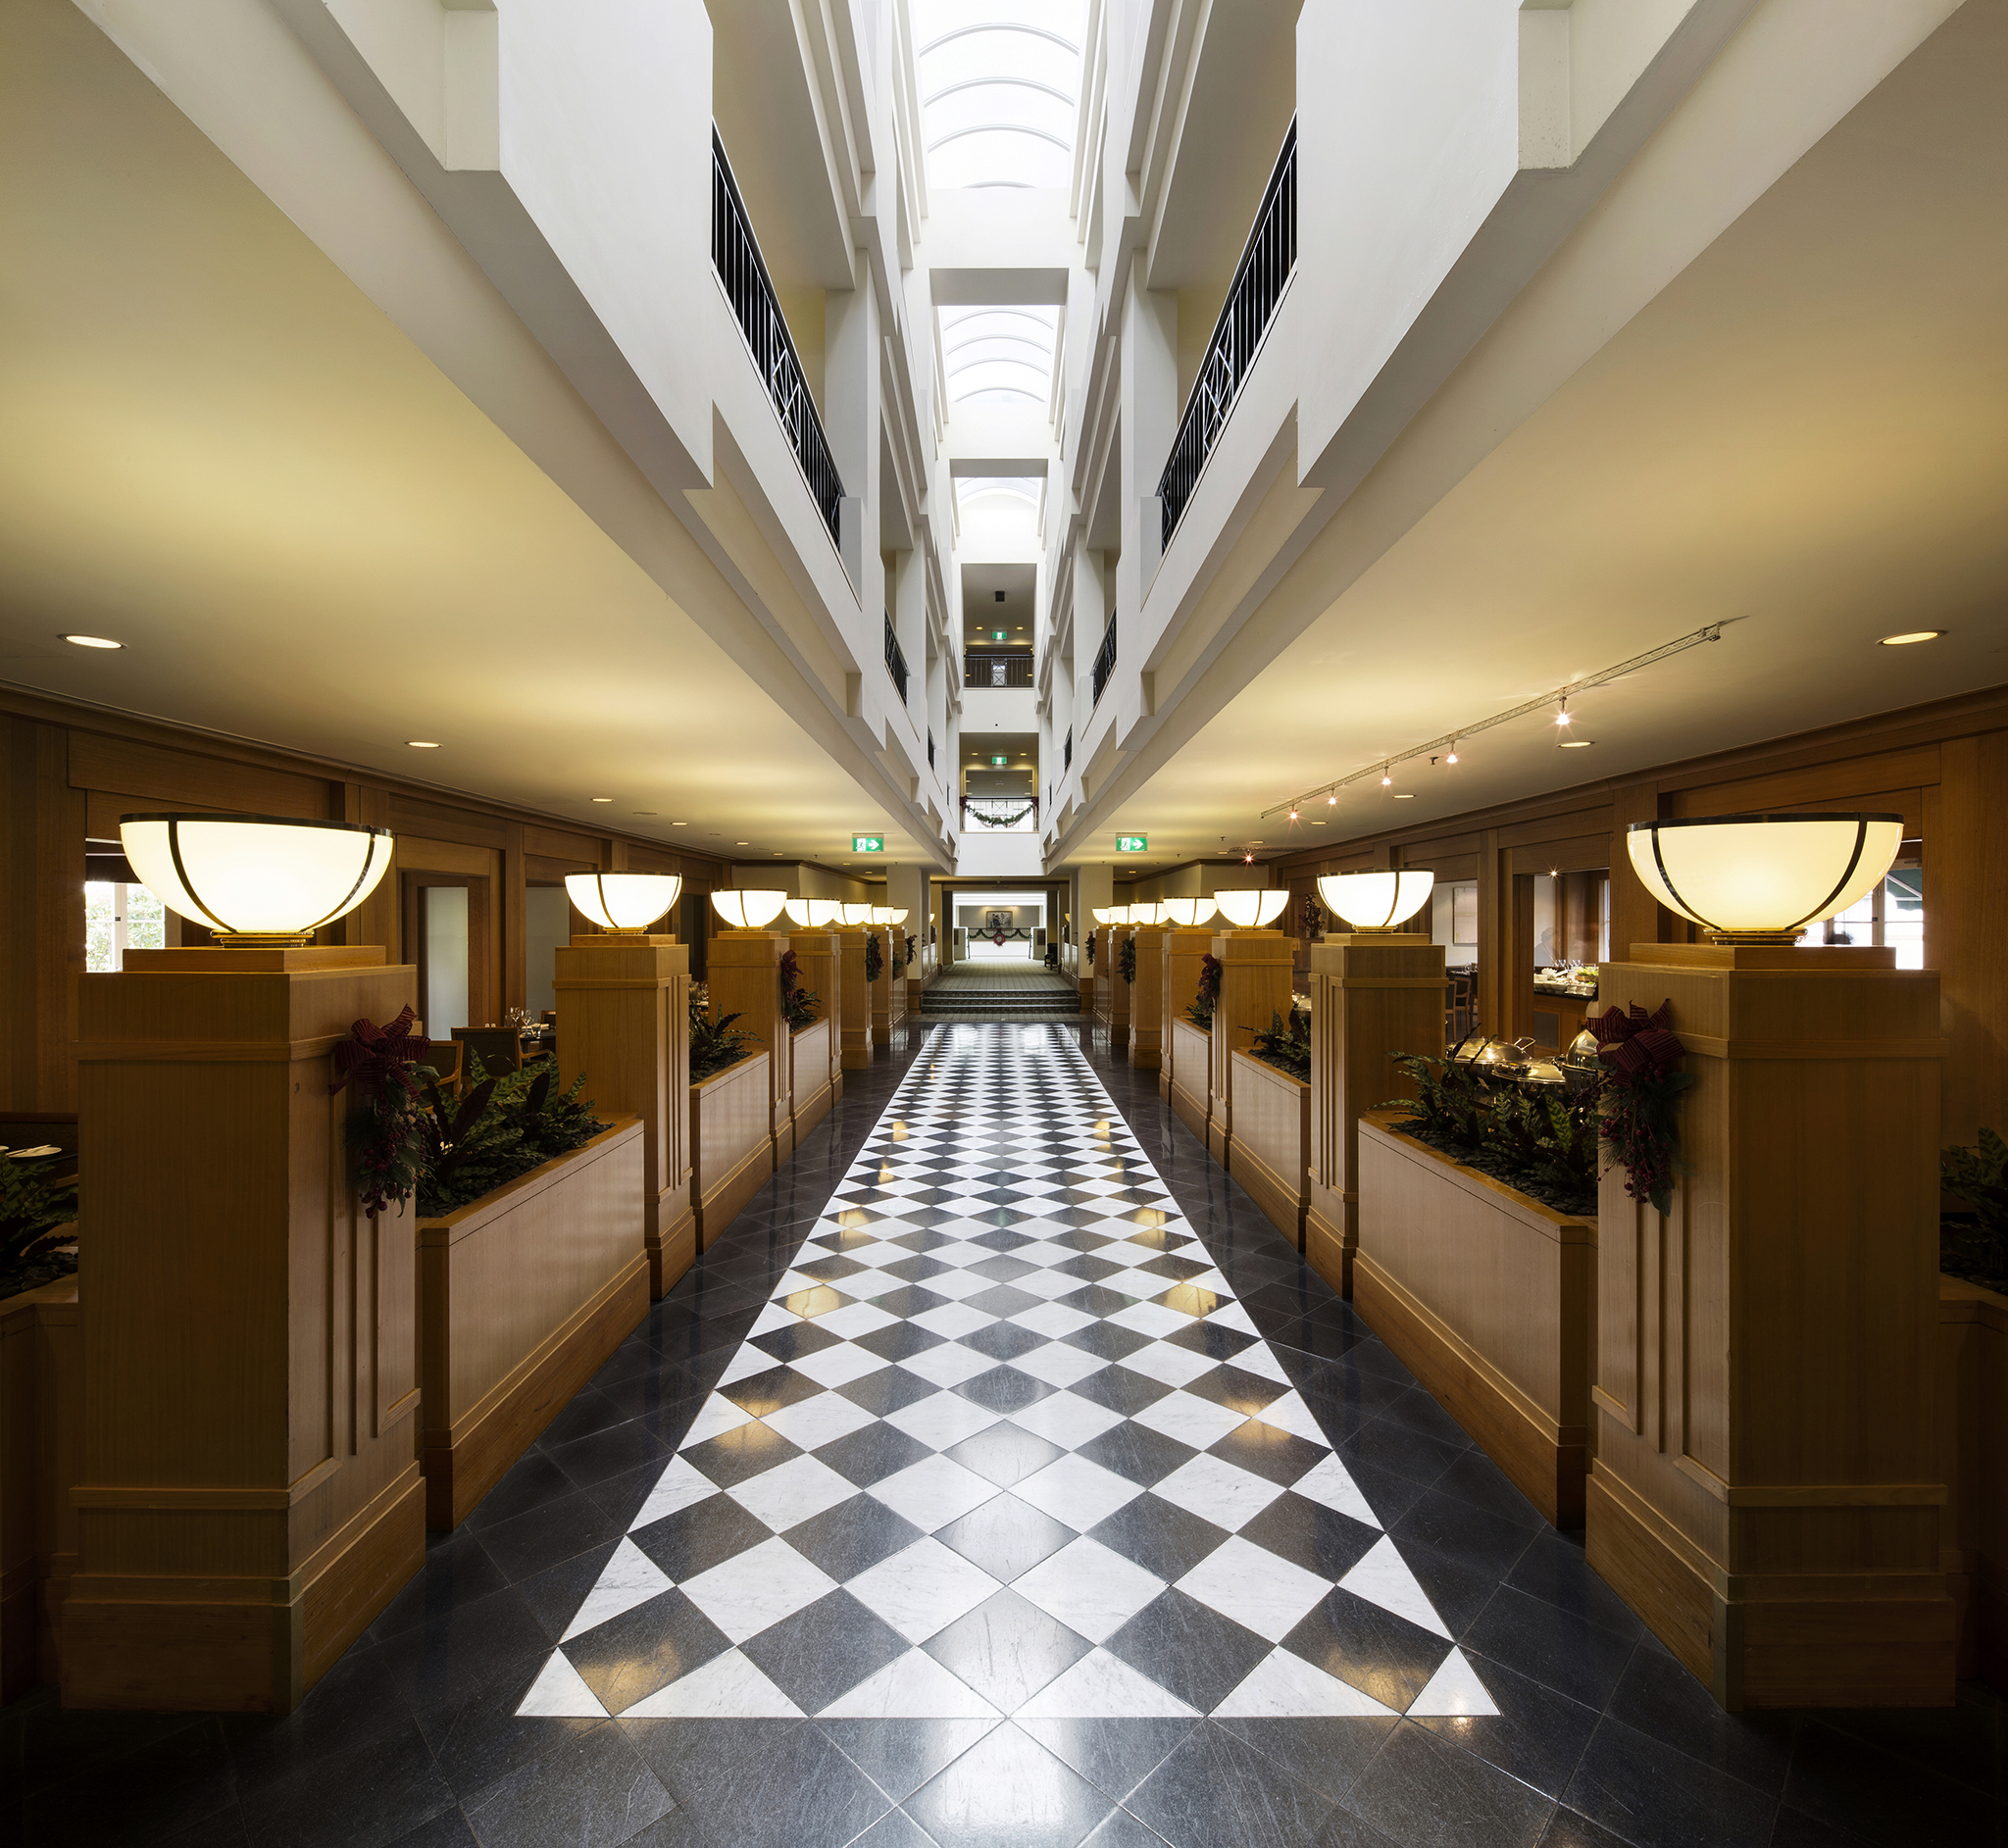 Hyatt Hotel Canberra luxury wedding venue and accommodation